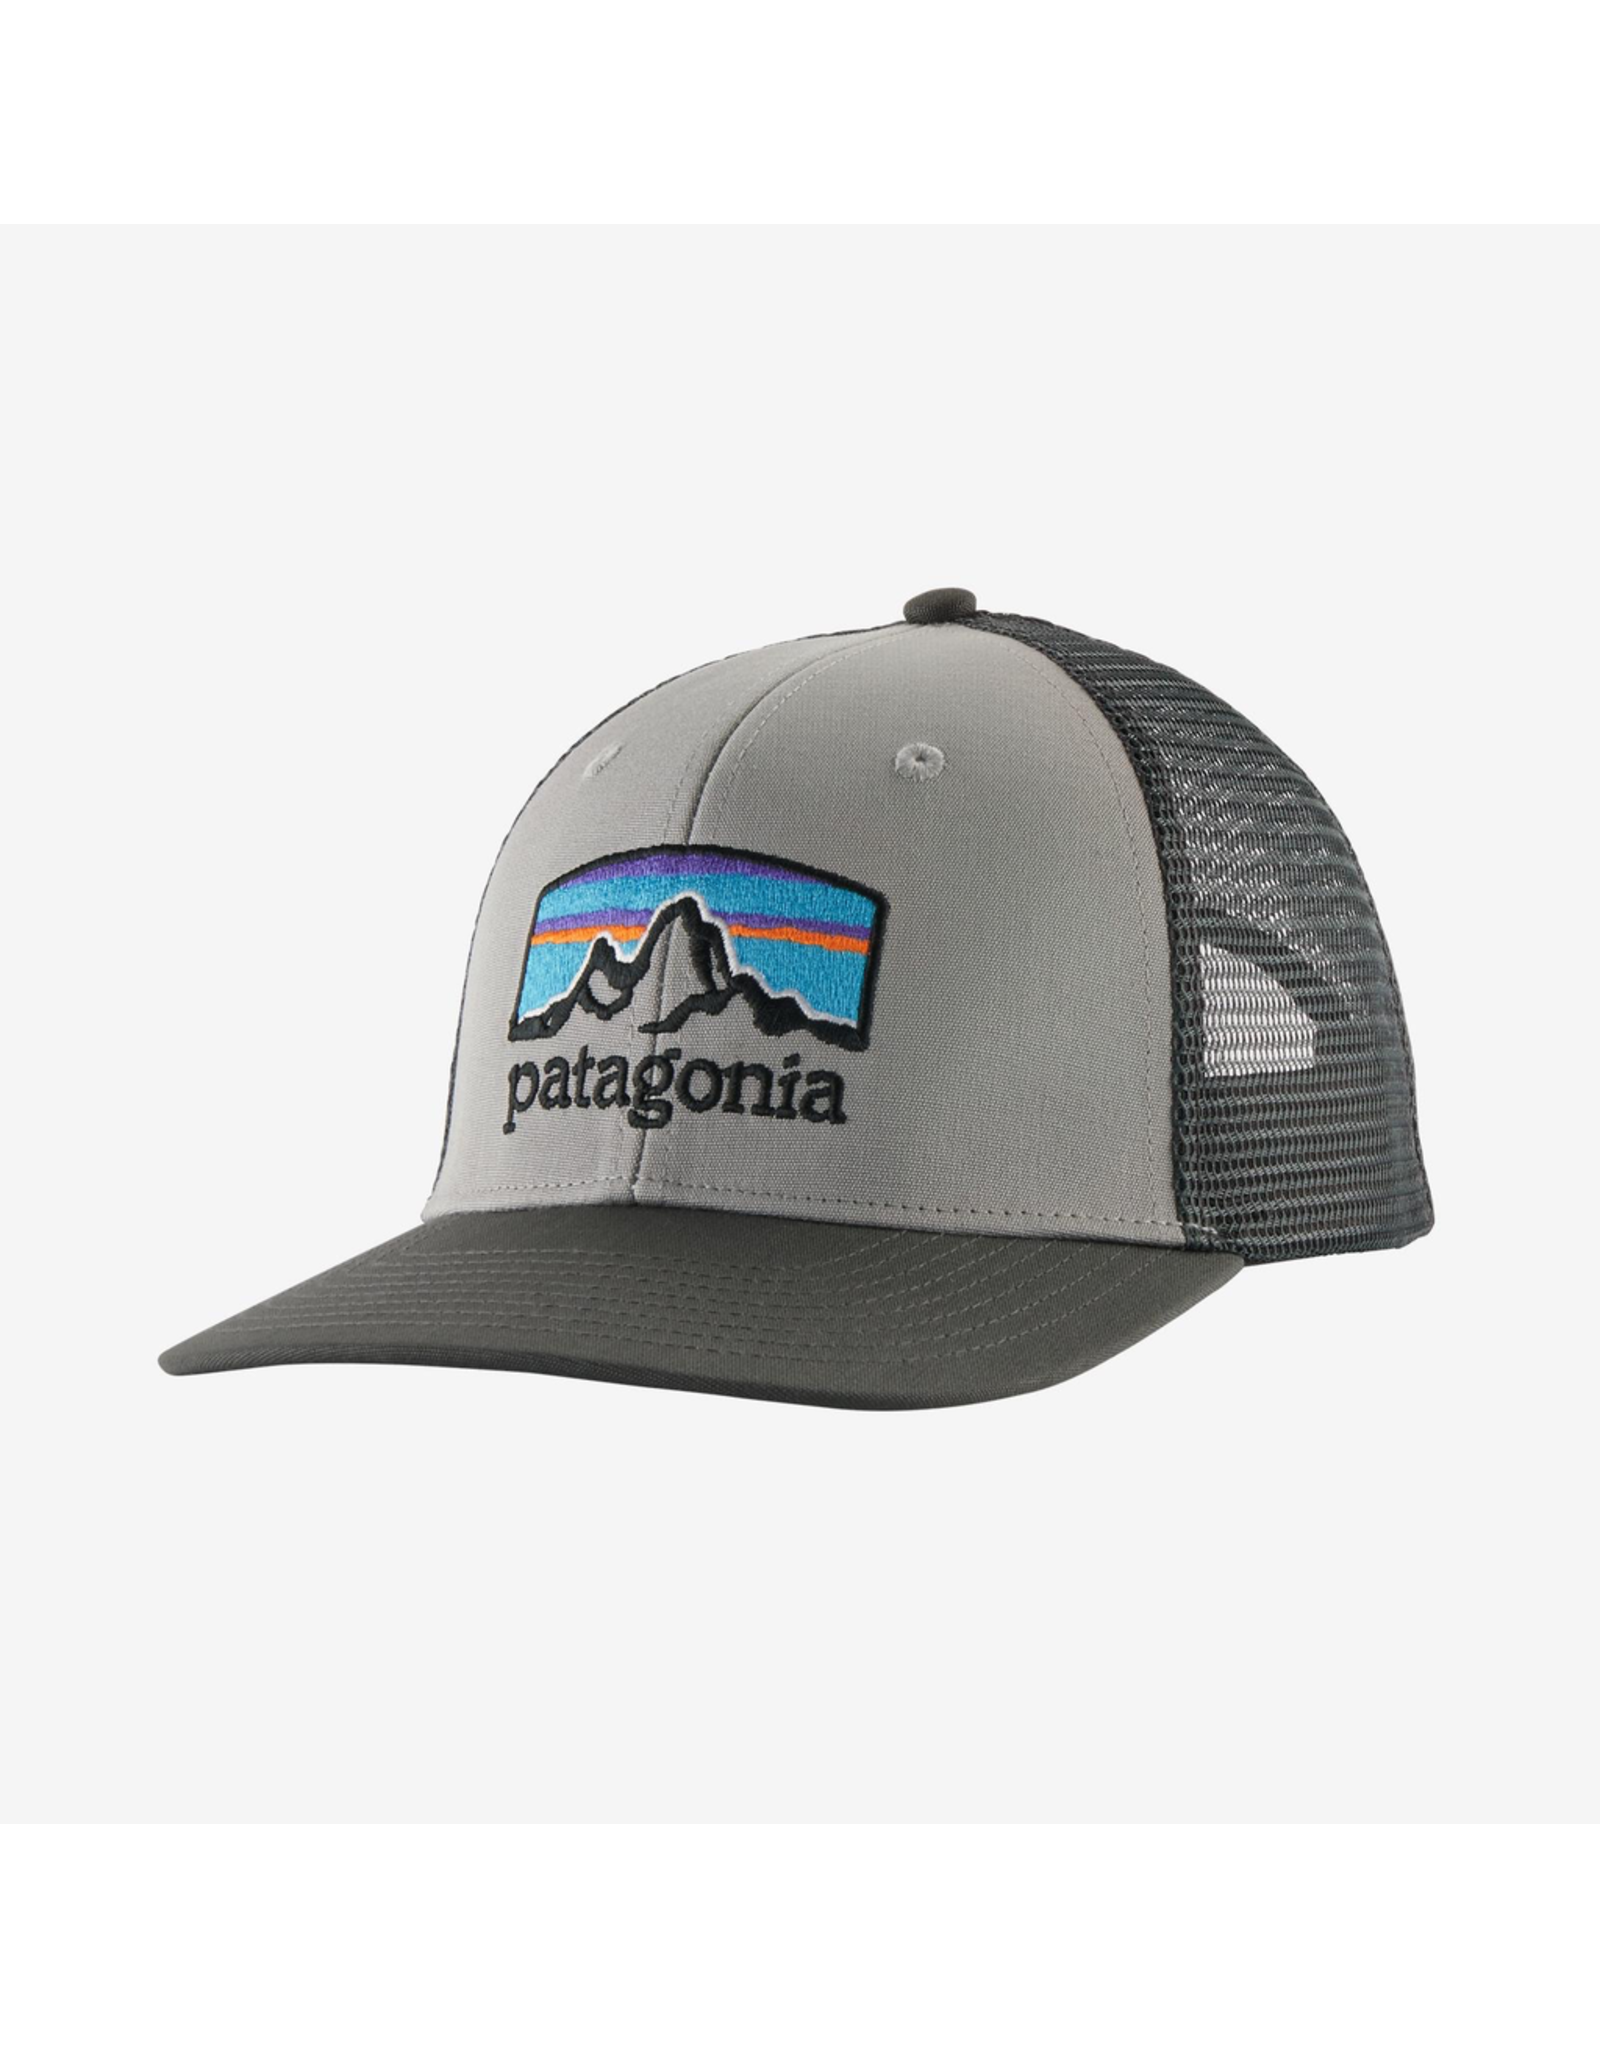 Patagonia Fitz Roy Horizons Trucker Hat Drifter Grey